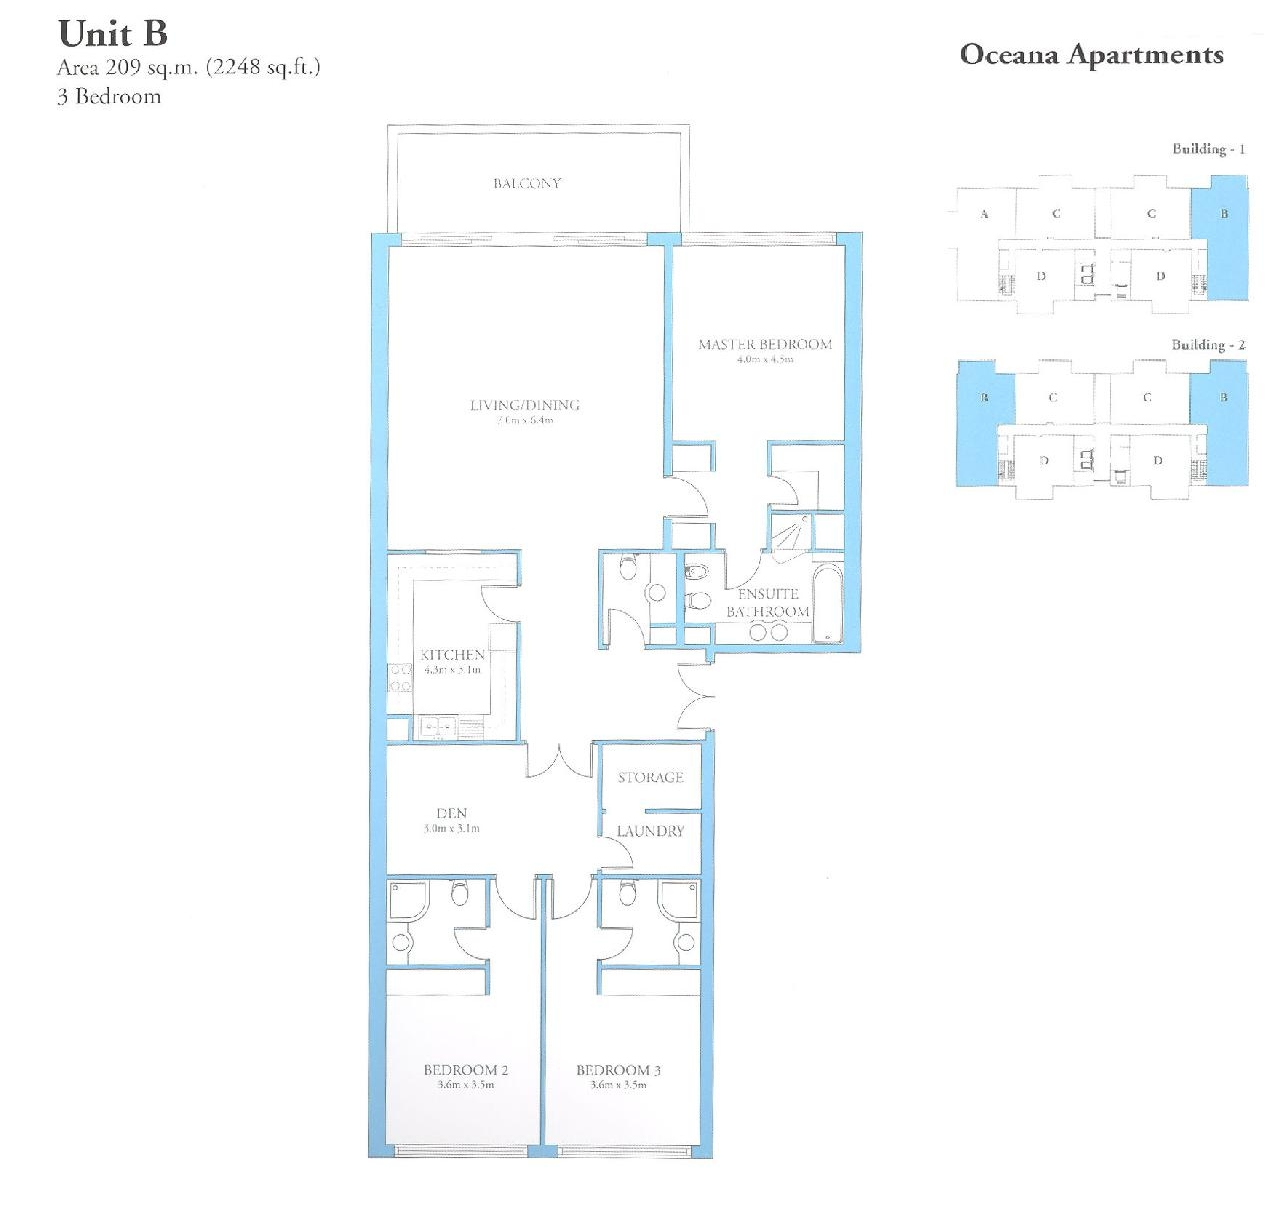 Oceana floor plans palm jumeirah dubai uae for 3 bedroom unit floor plans